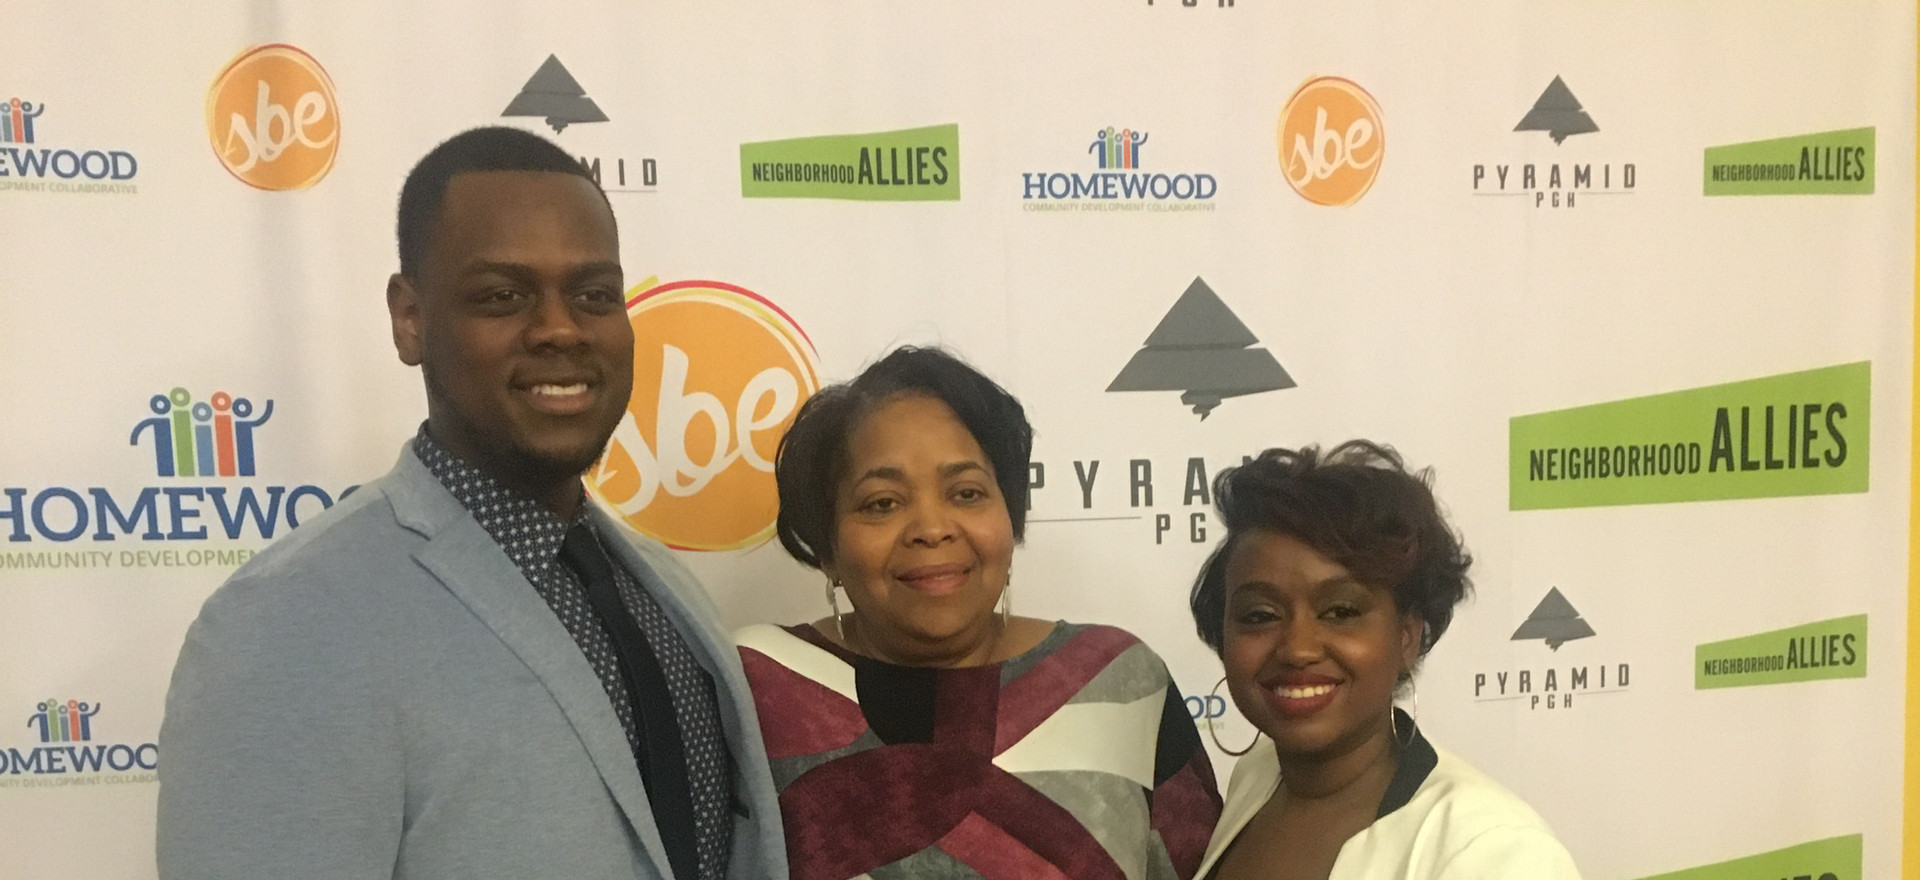 The Homewood Experience Press Conference